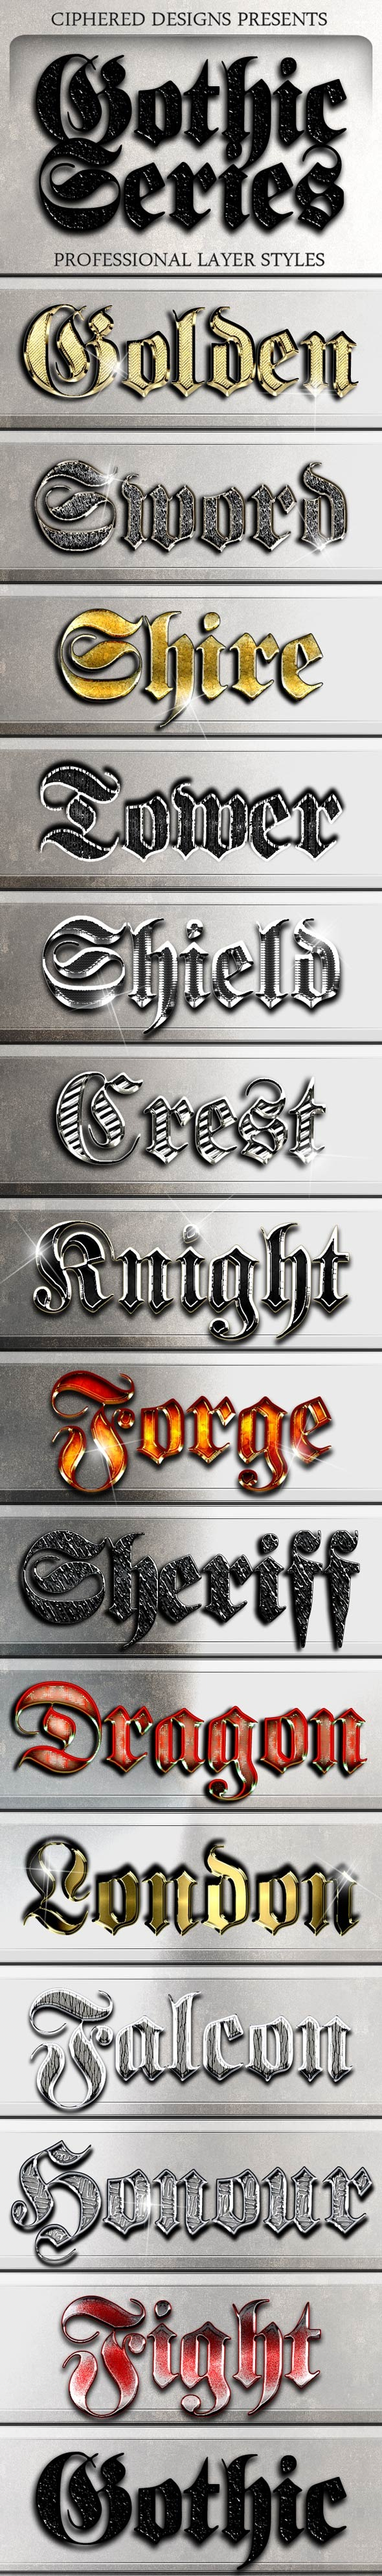 Gothic Series - Professional Layer Styles - Text Effects Styles